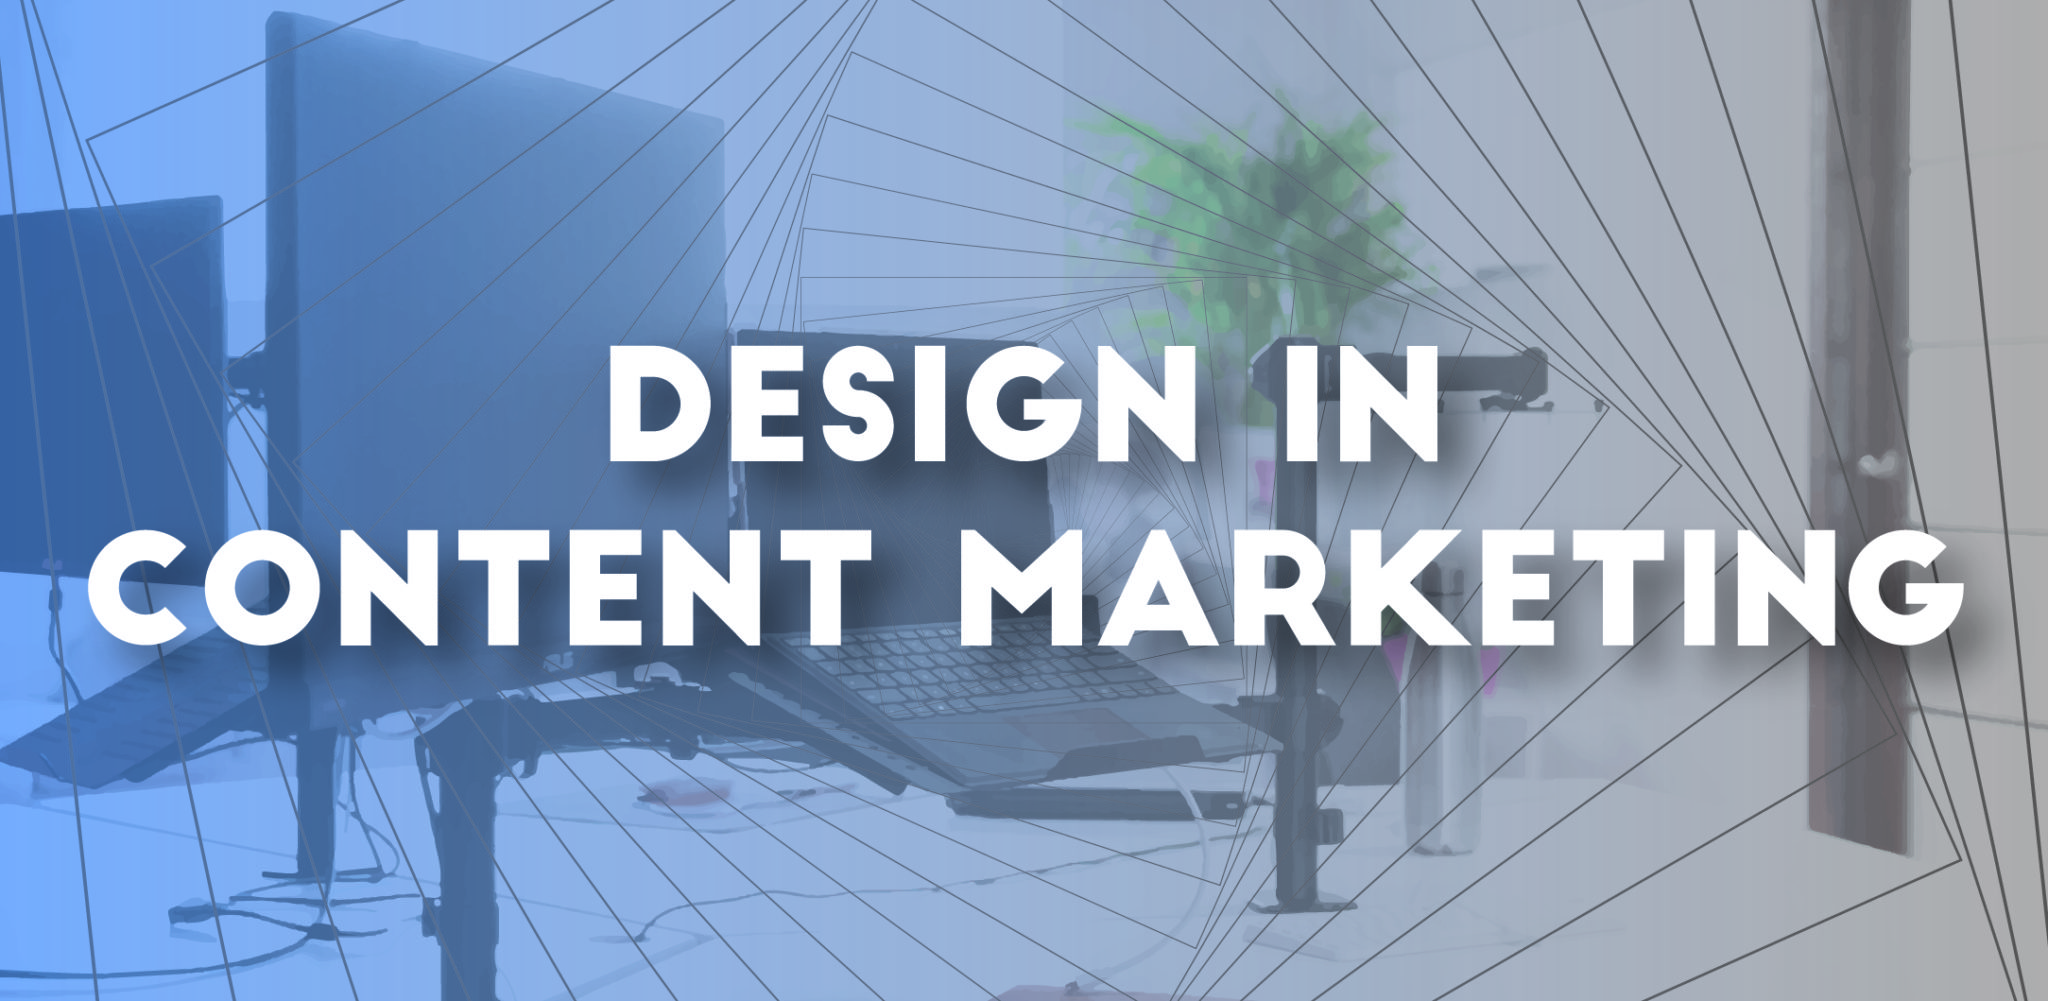 design in content marketing visual